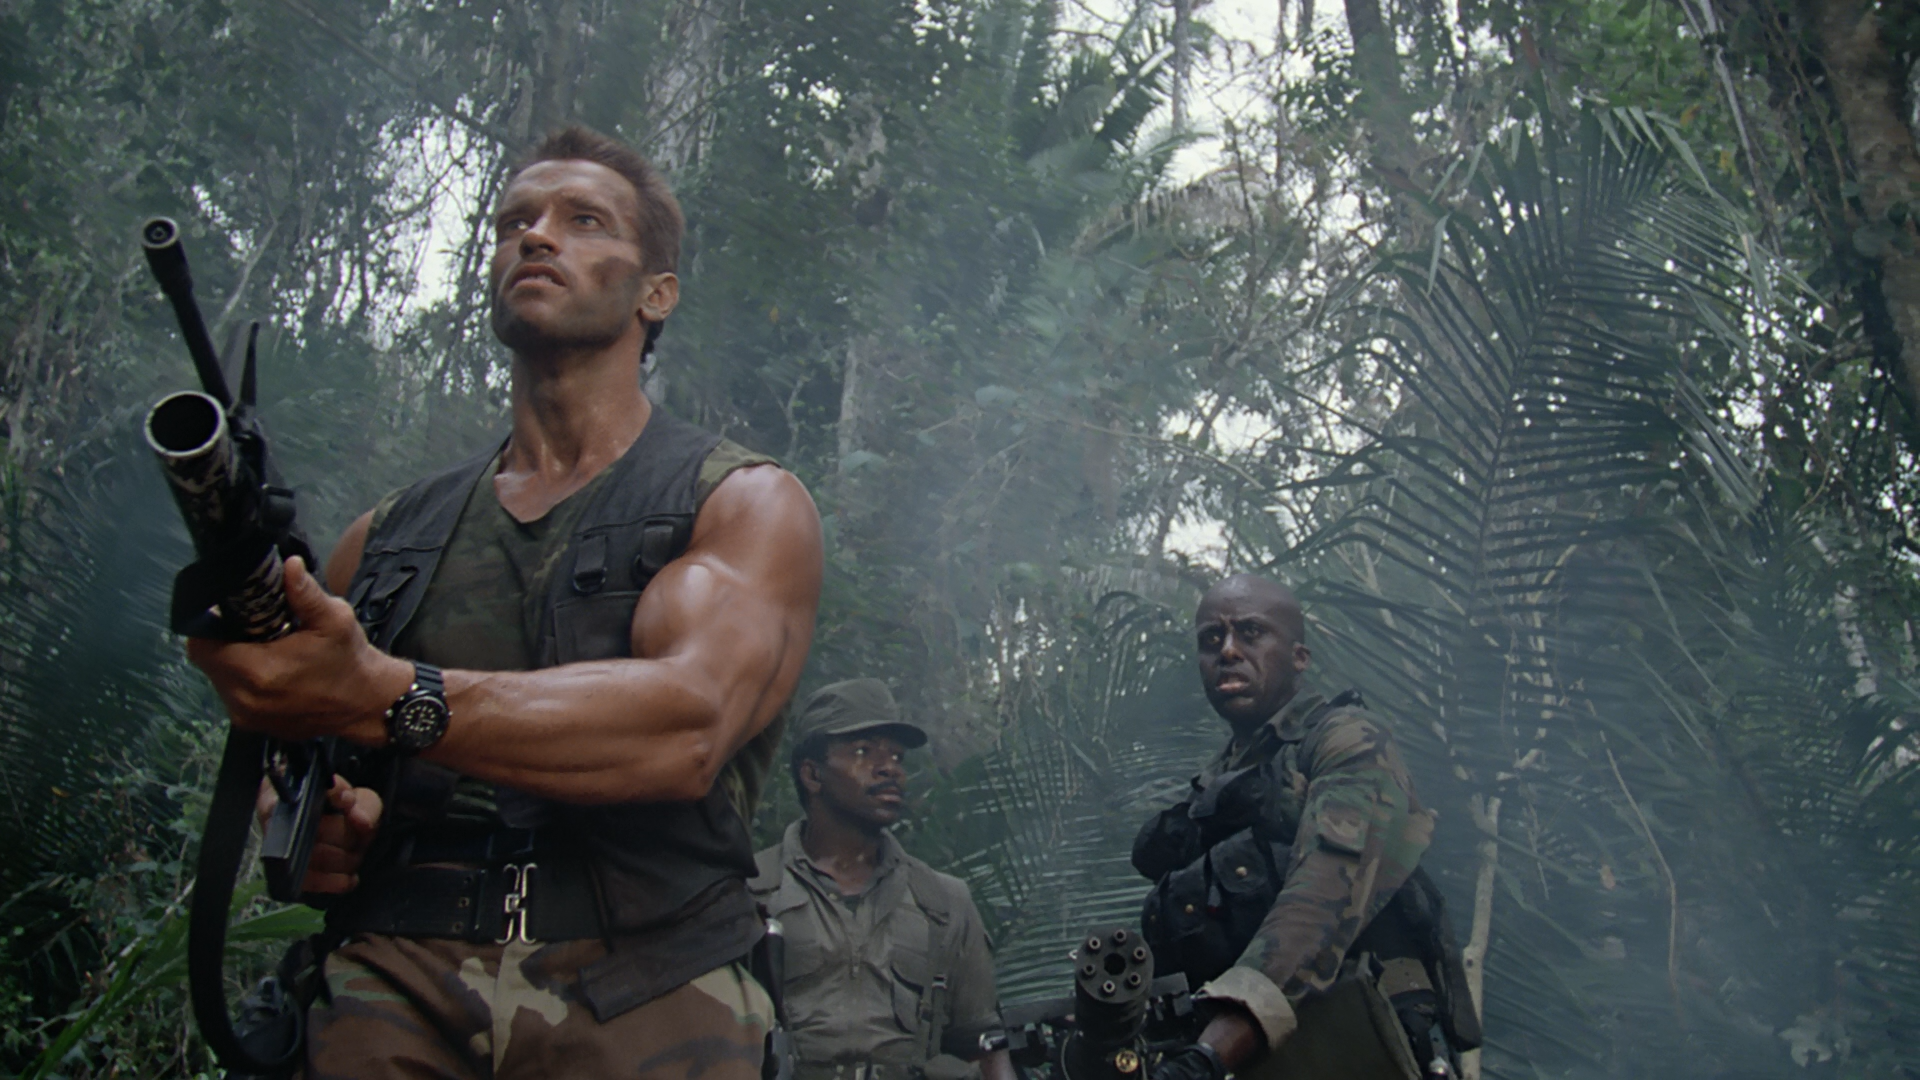 Arnold Schwarzenegger as Dutch in Predator.